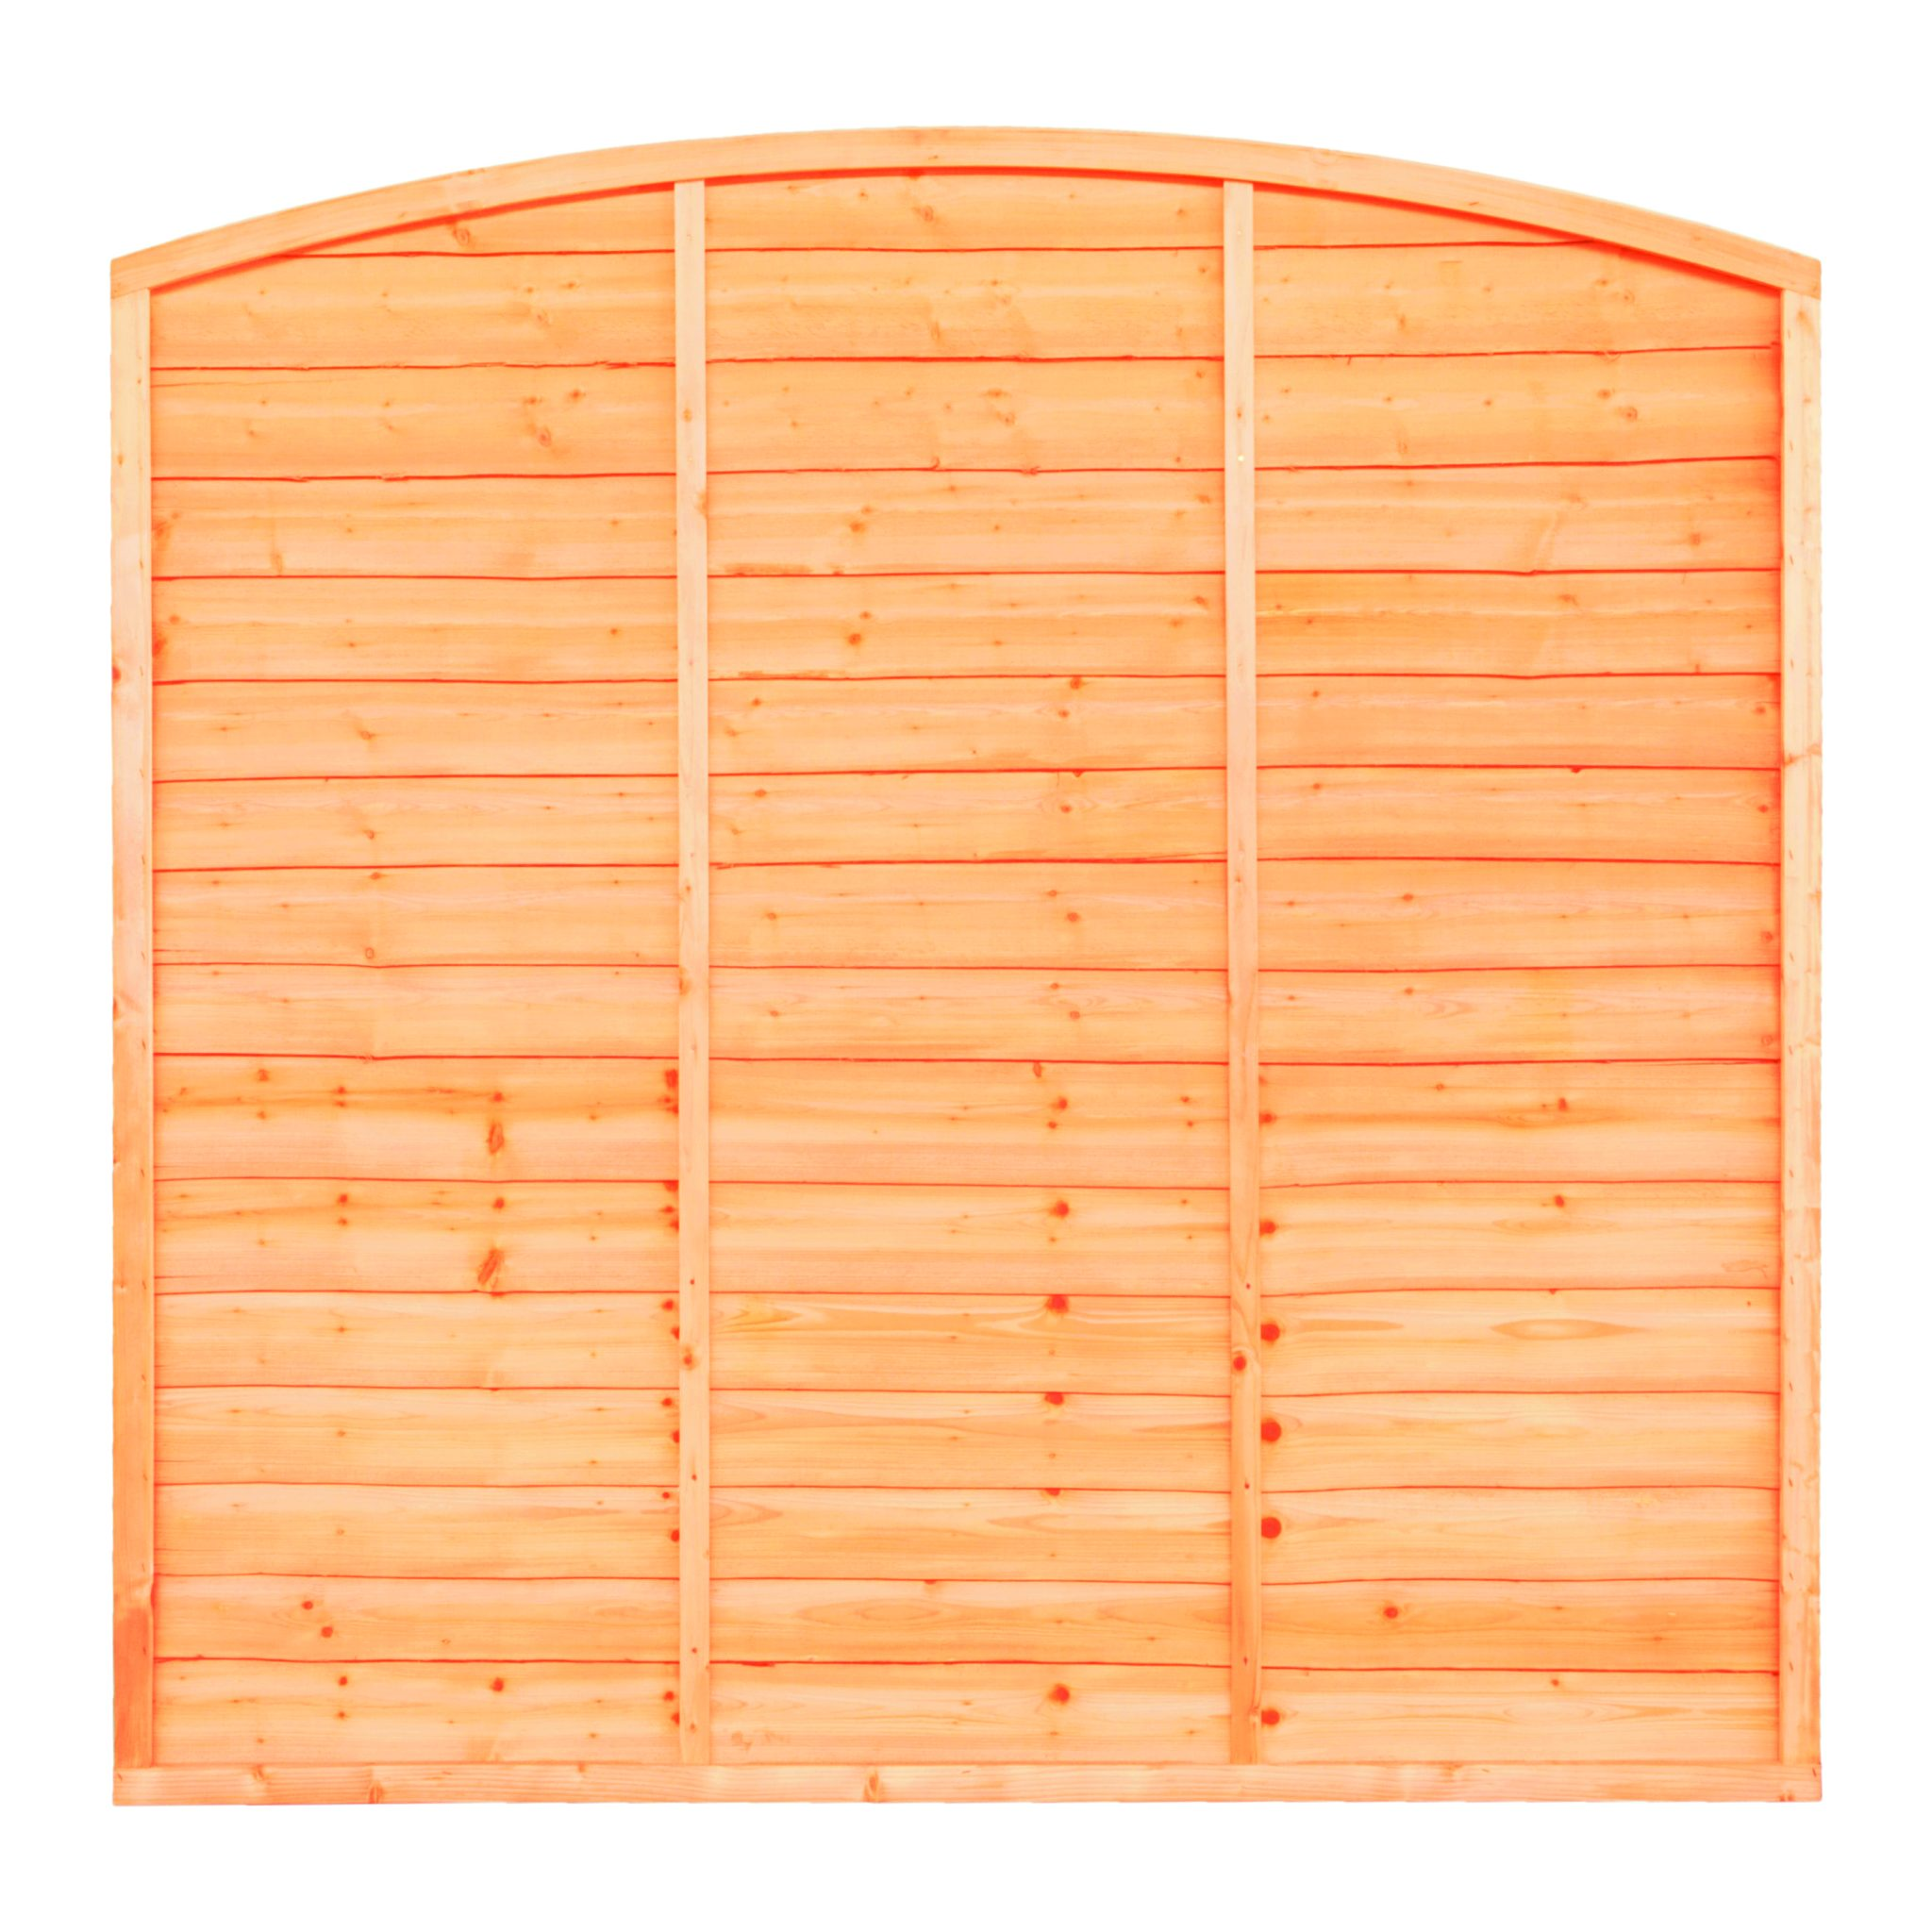 SUPERIOR BOW TOP LAP FENCE PANEL An added twist to a simple design, a stronger lap panel constructed using double waney edge slats that are secured into a neat arched shaped rebated frame.